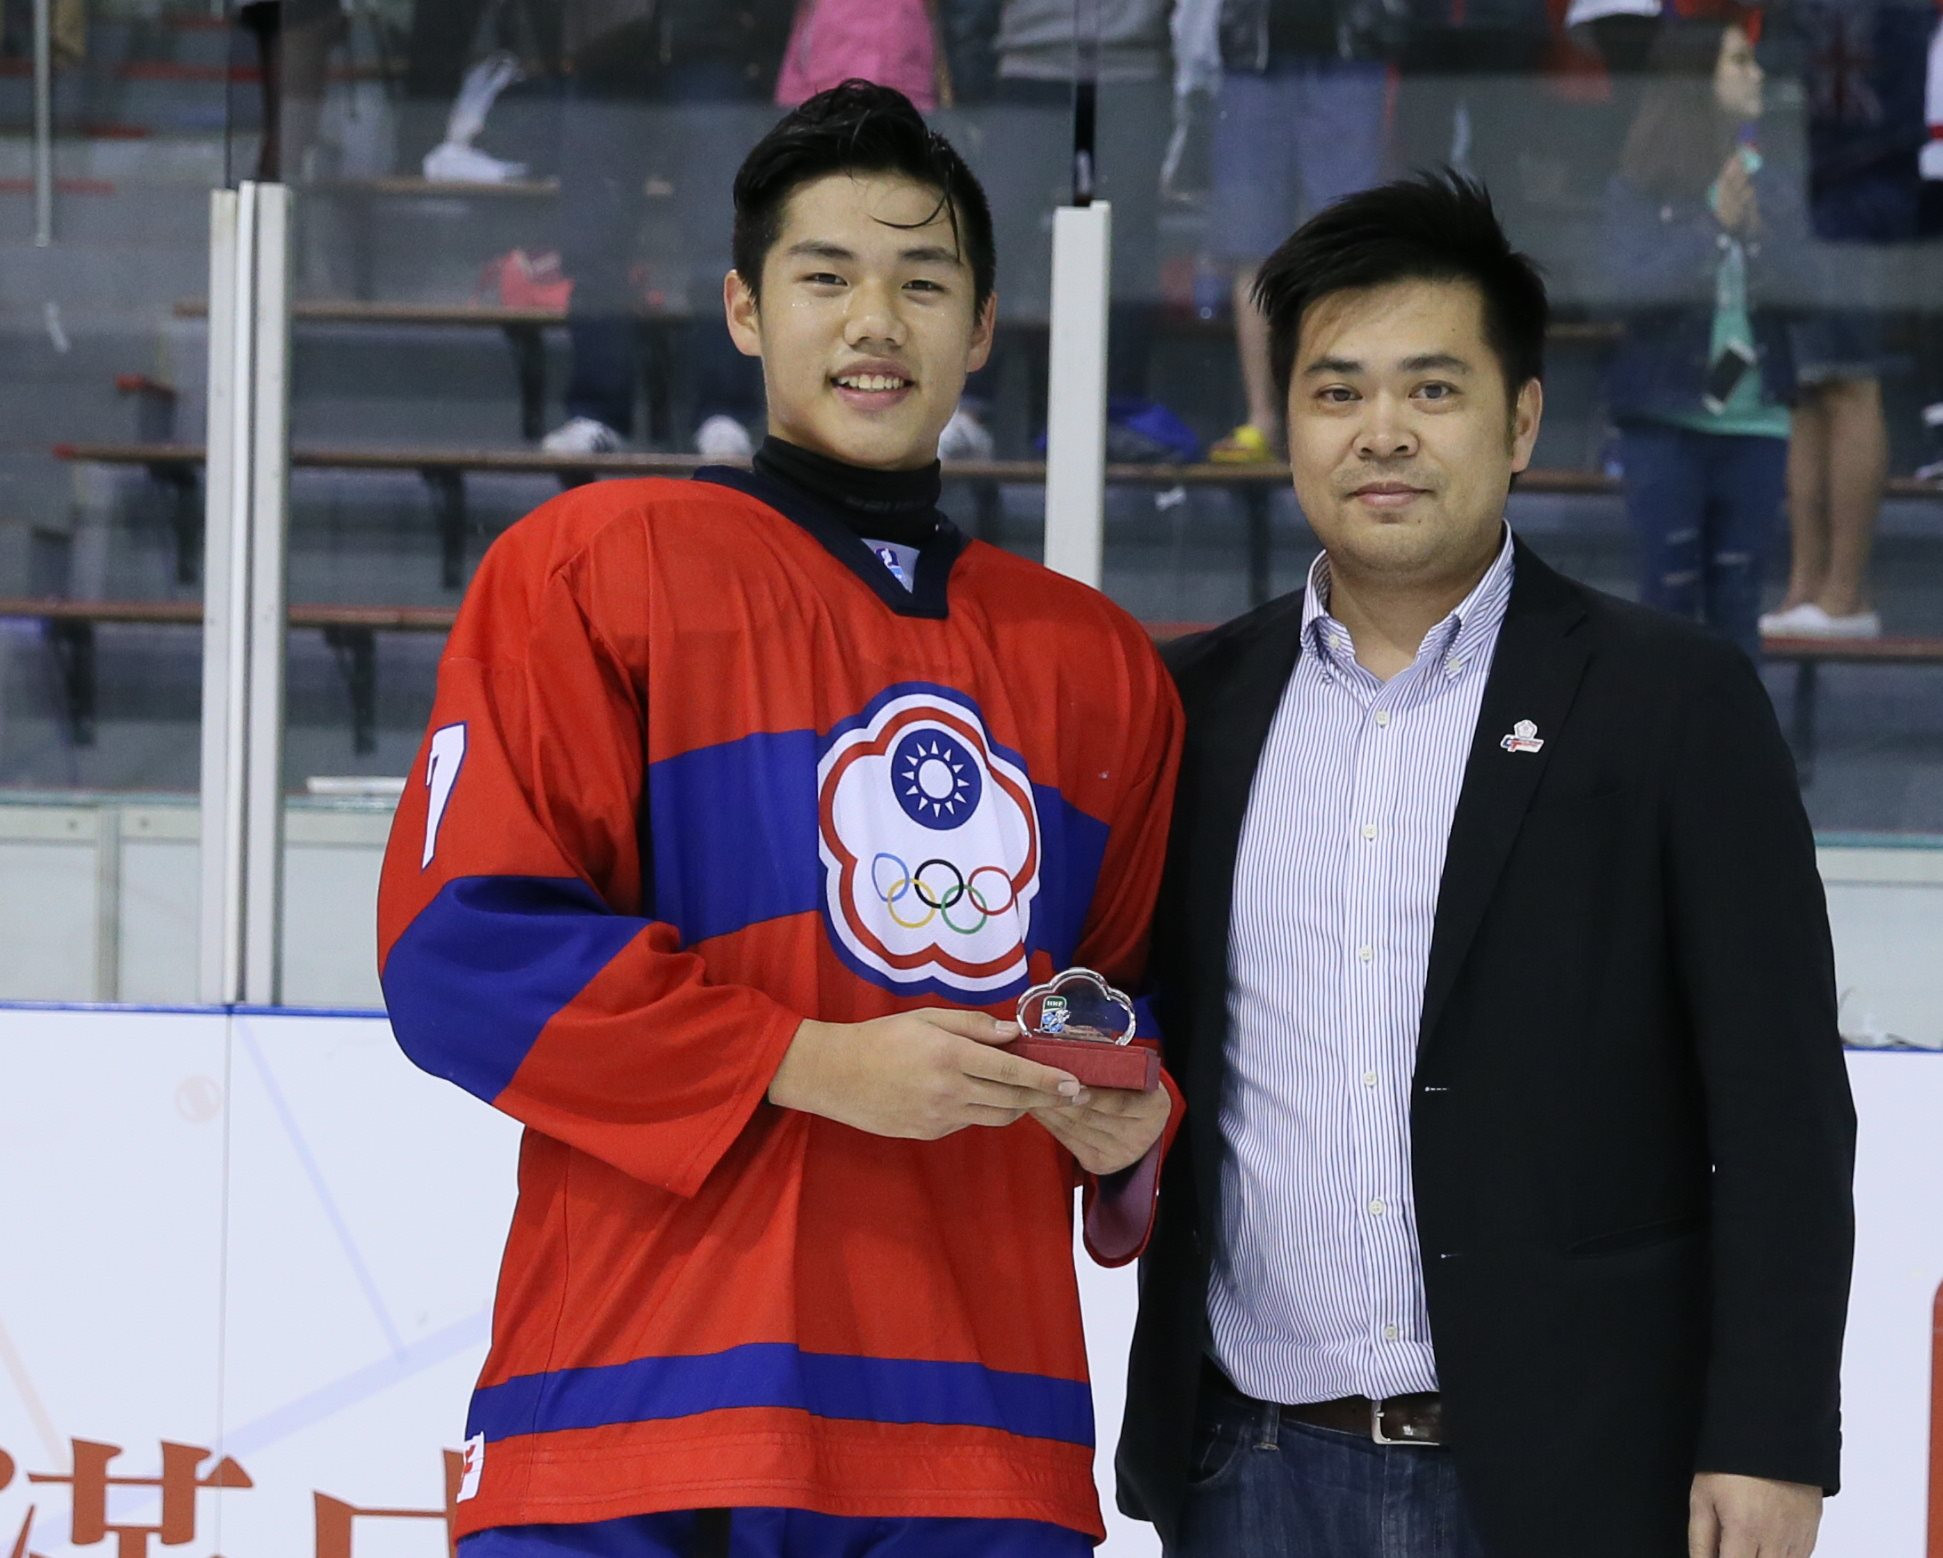 Chinese Taipei ice hockey skipper dies suddenly at the age of 16